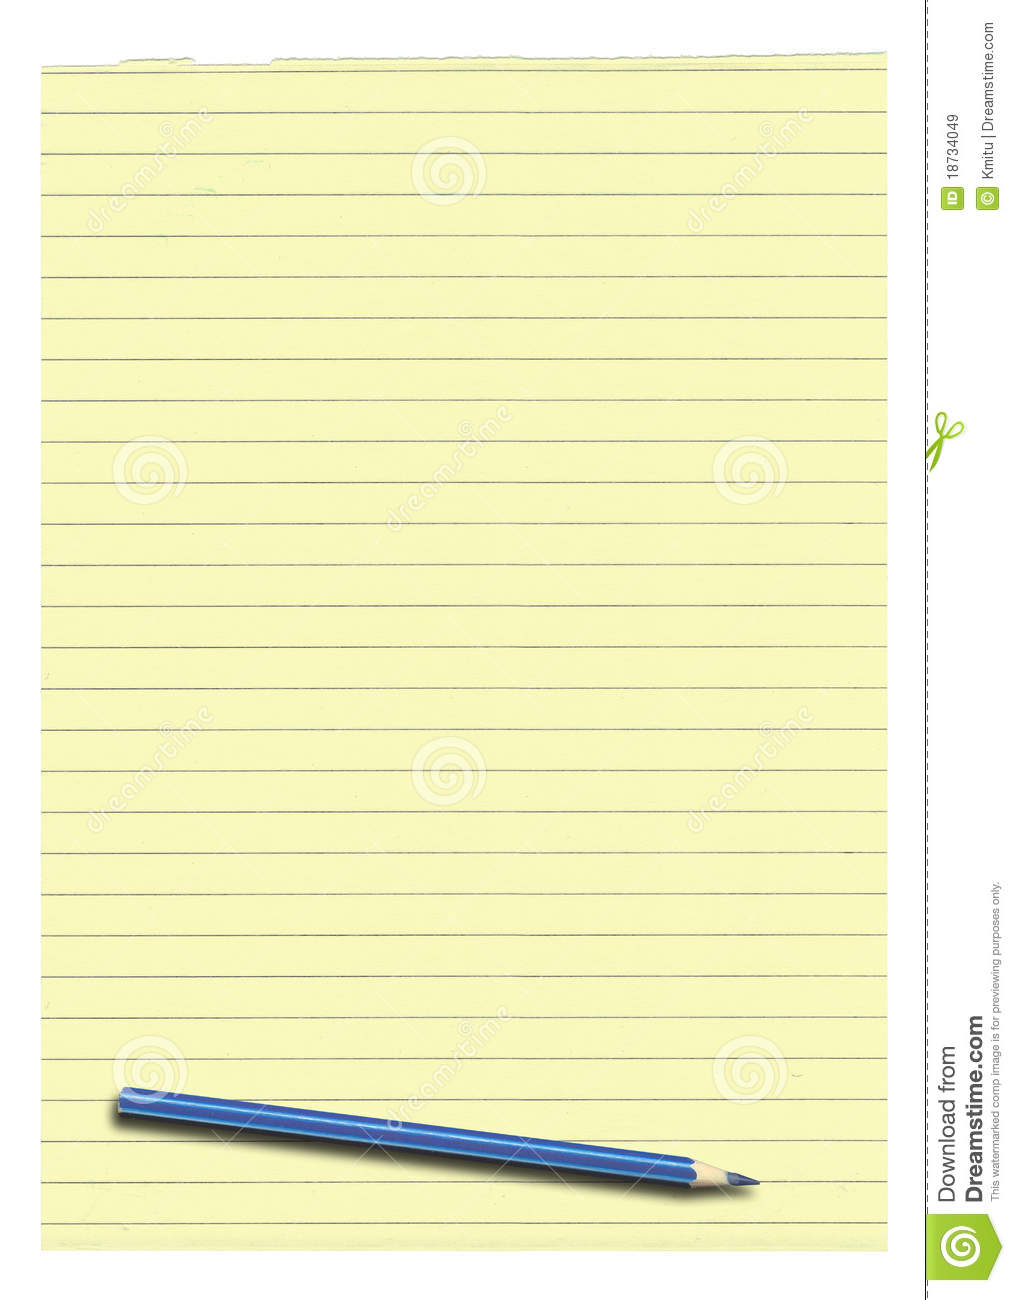 Yellow Lined Paper And Pencil Stock Image Image 18734049 Yellow Lined Paper  Pencil 18734049 Royalty Free  Download Lined Paper